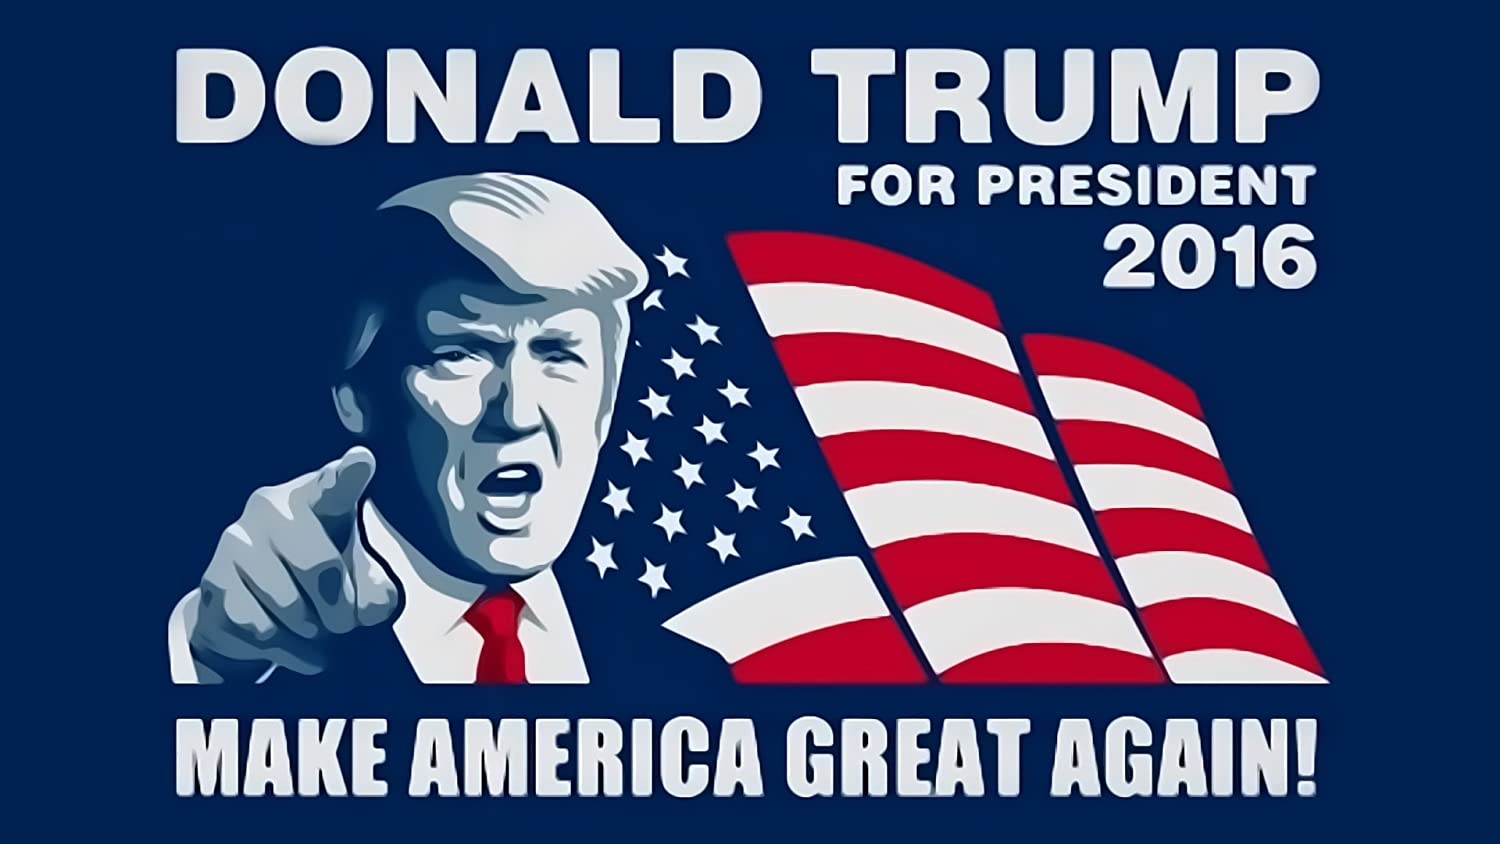 Amazon.com : Donald Trump For President Presidential Election Poster Photo  Limited Print Republican Sexy Celebrity Size 16x20 #1 : Everything Else